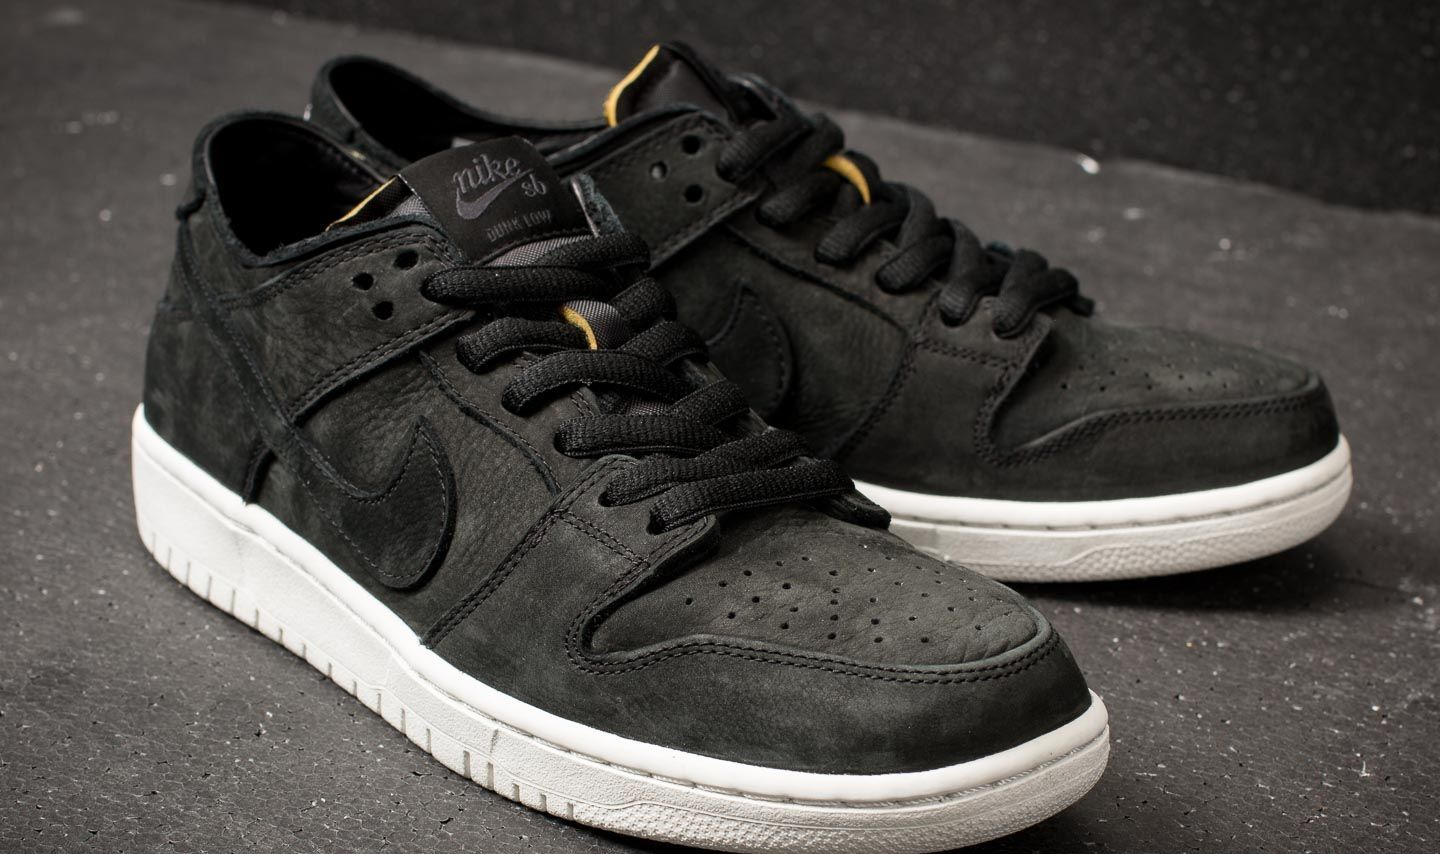 19a50de24e45 ... clearance nike sb zoom dunk low pro decon black black summit white at a  great 21791